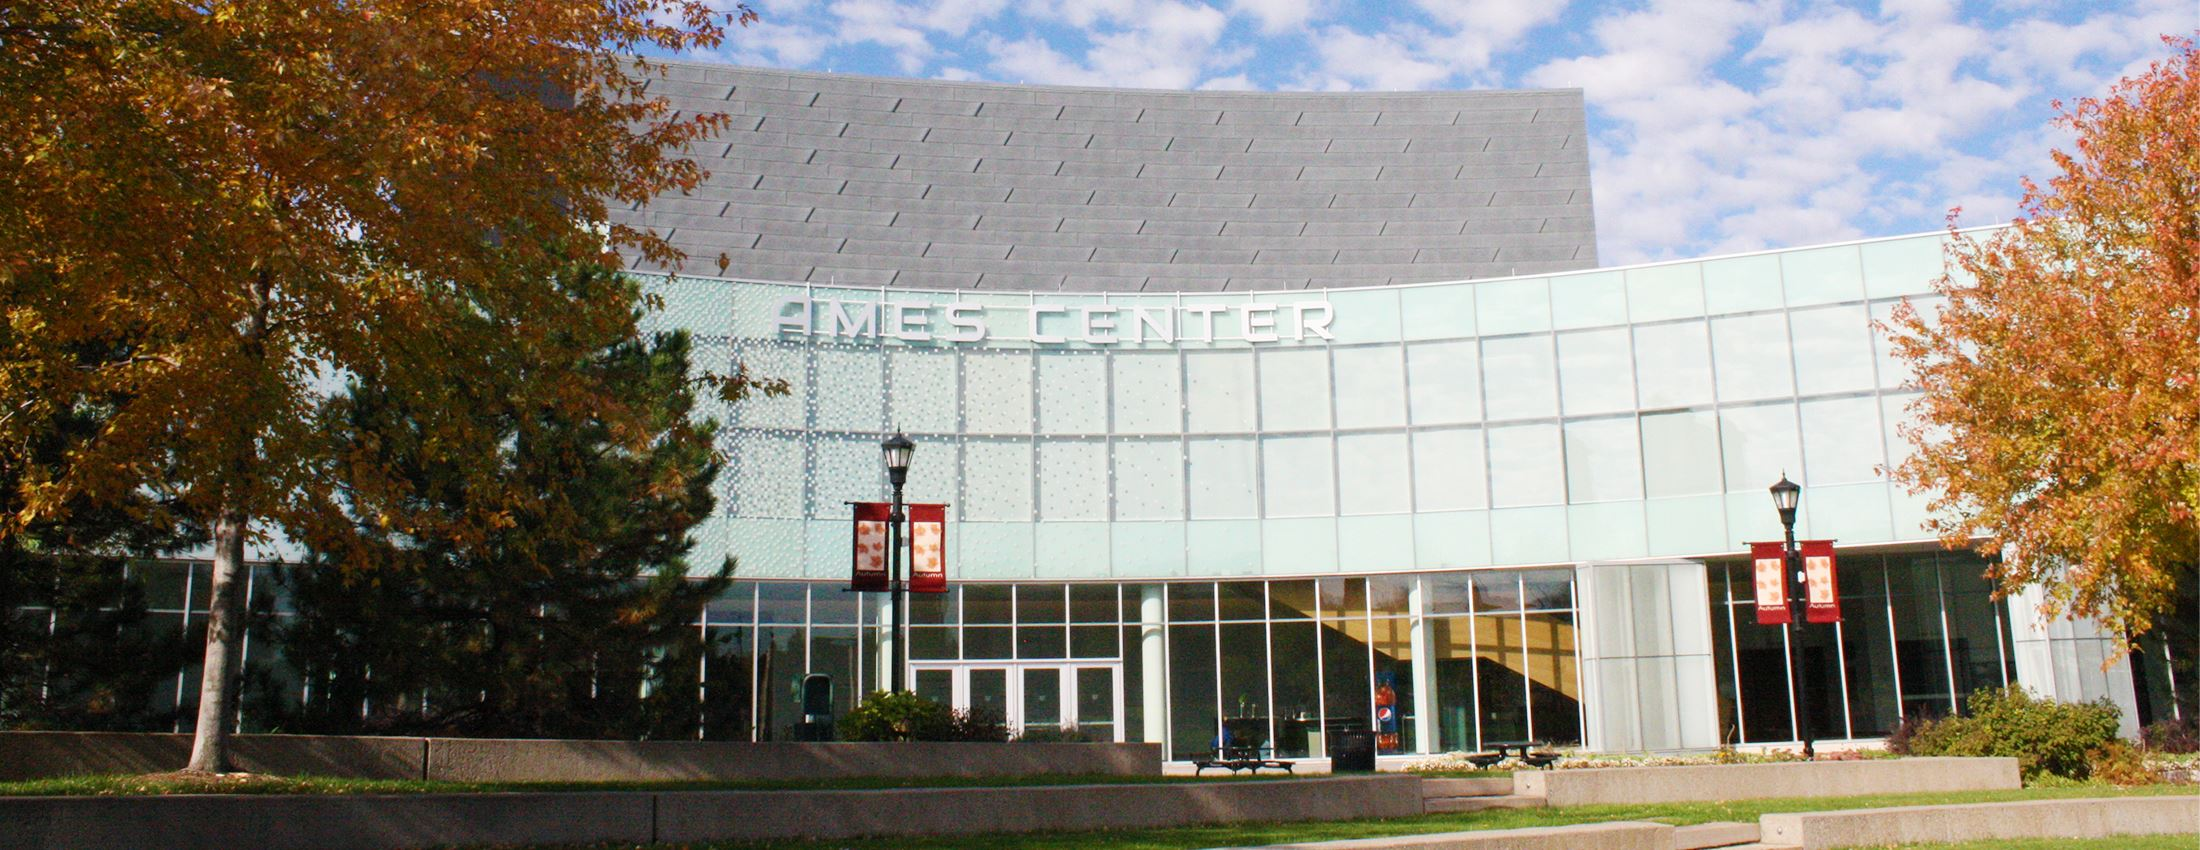 Ames Center surrounded by trees with fall-color leaves